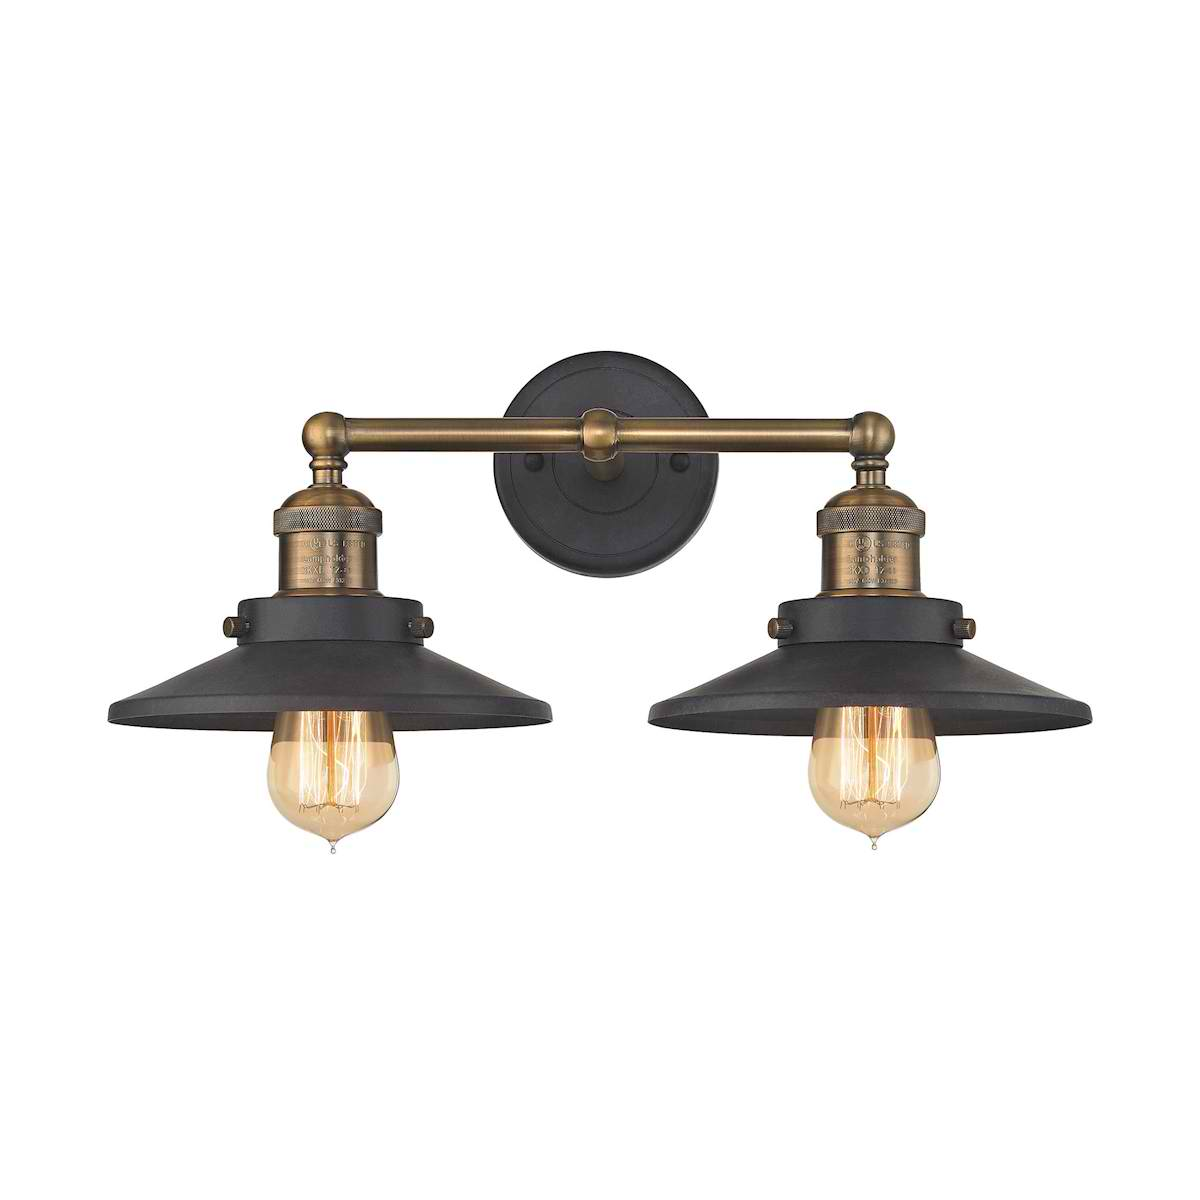 English Pub 2 Light Vanity in Tarnished Graphite and Antique Brass